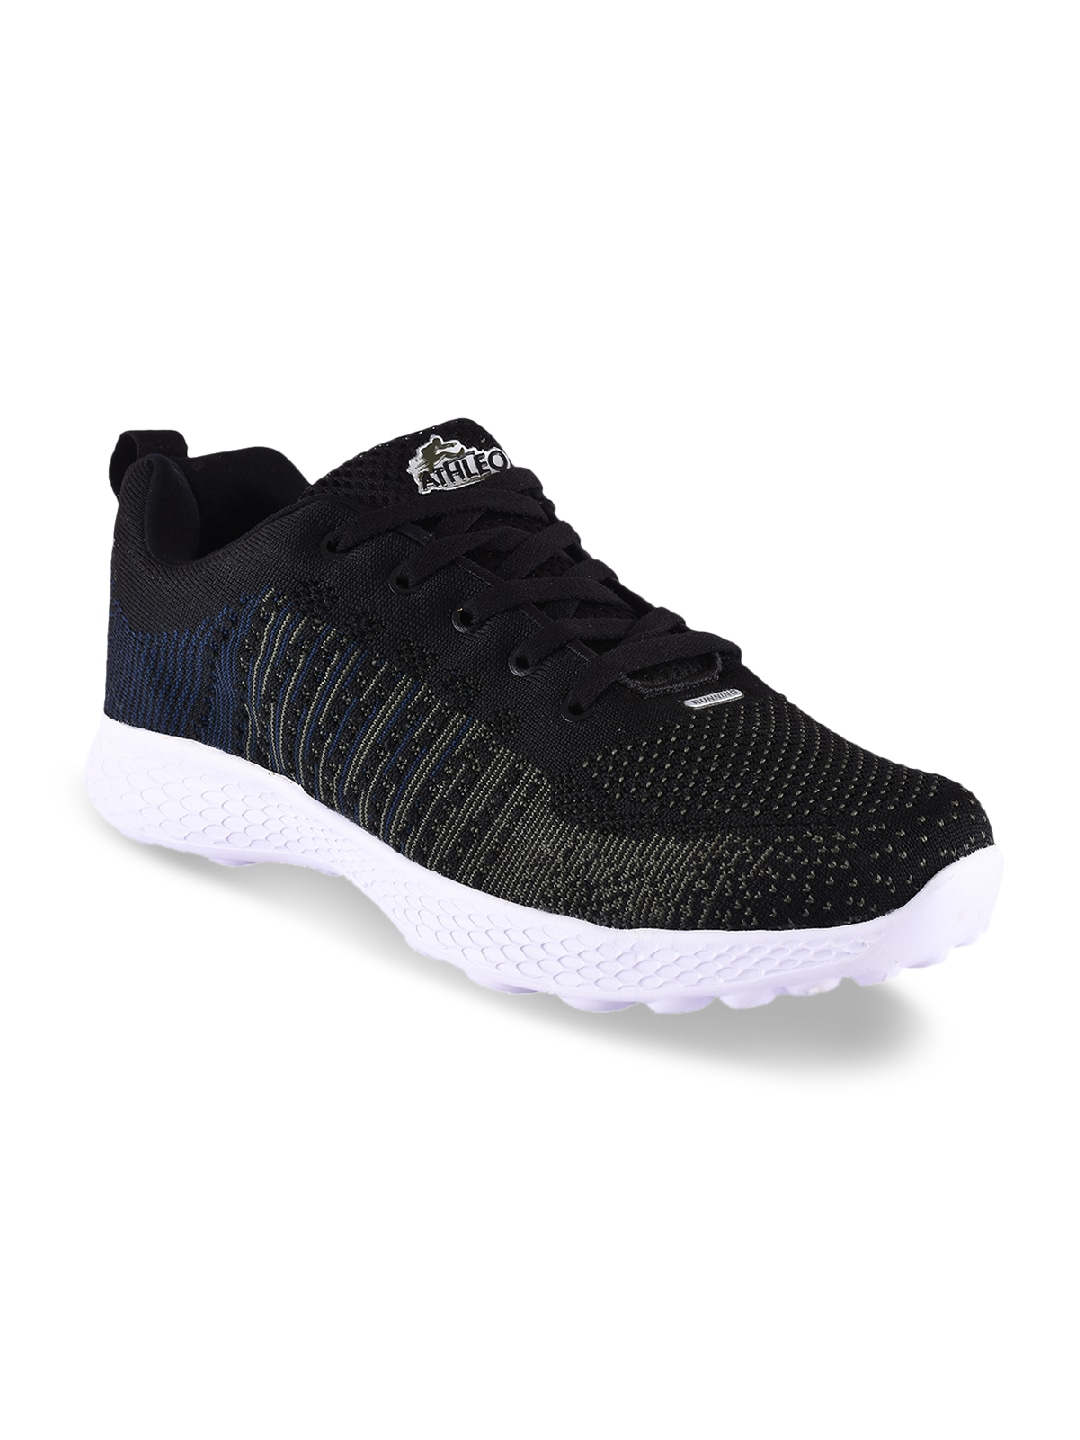 Black Synthetic Running Shoes